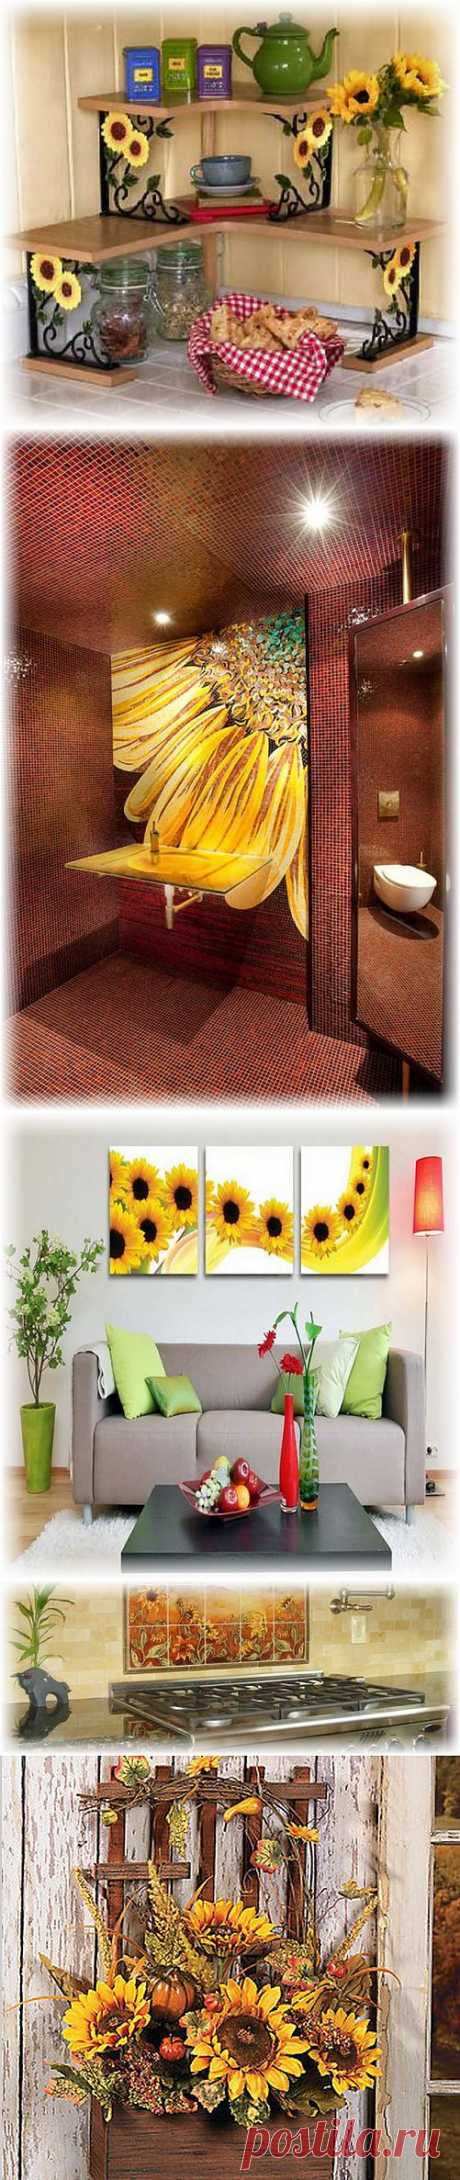 Sunflowers. Ideas for an interior   the Home